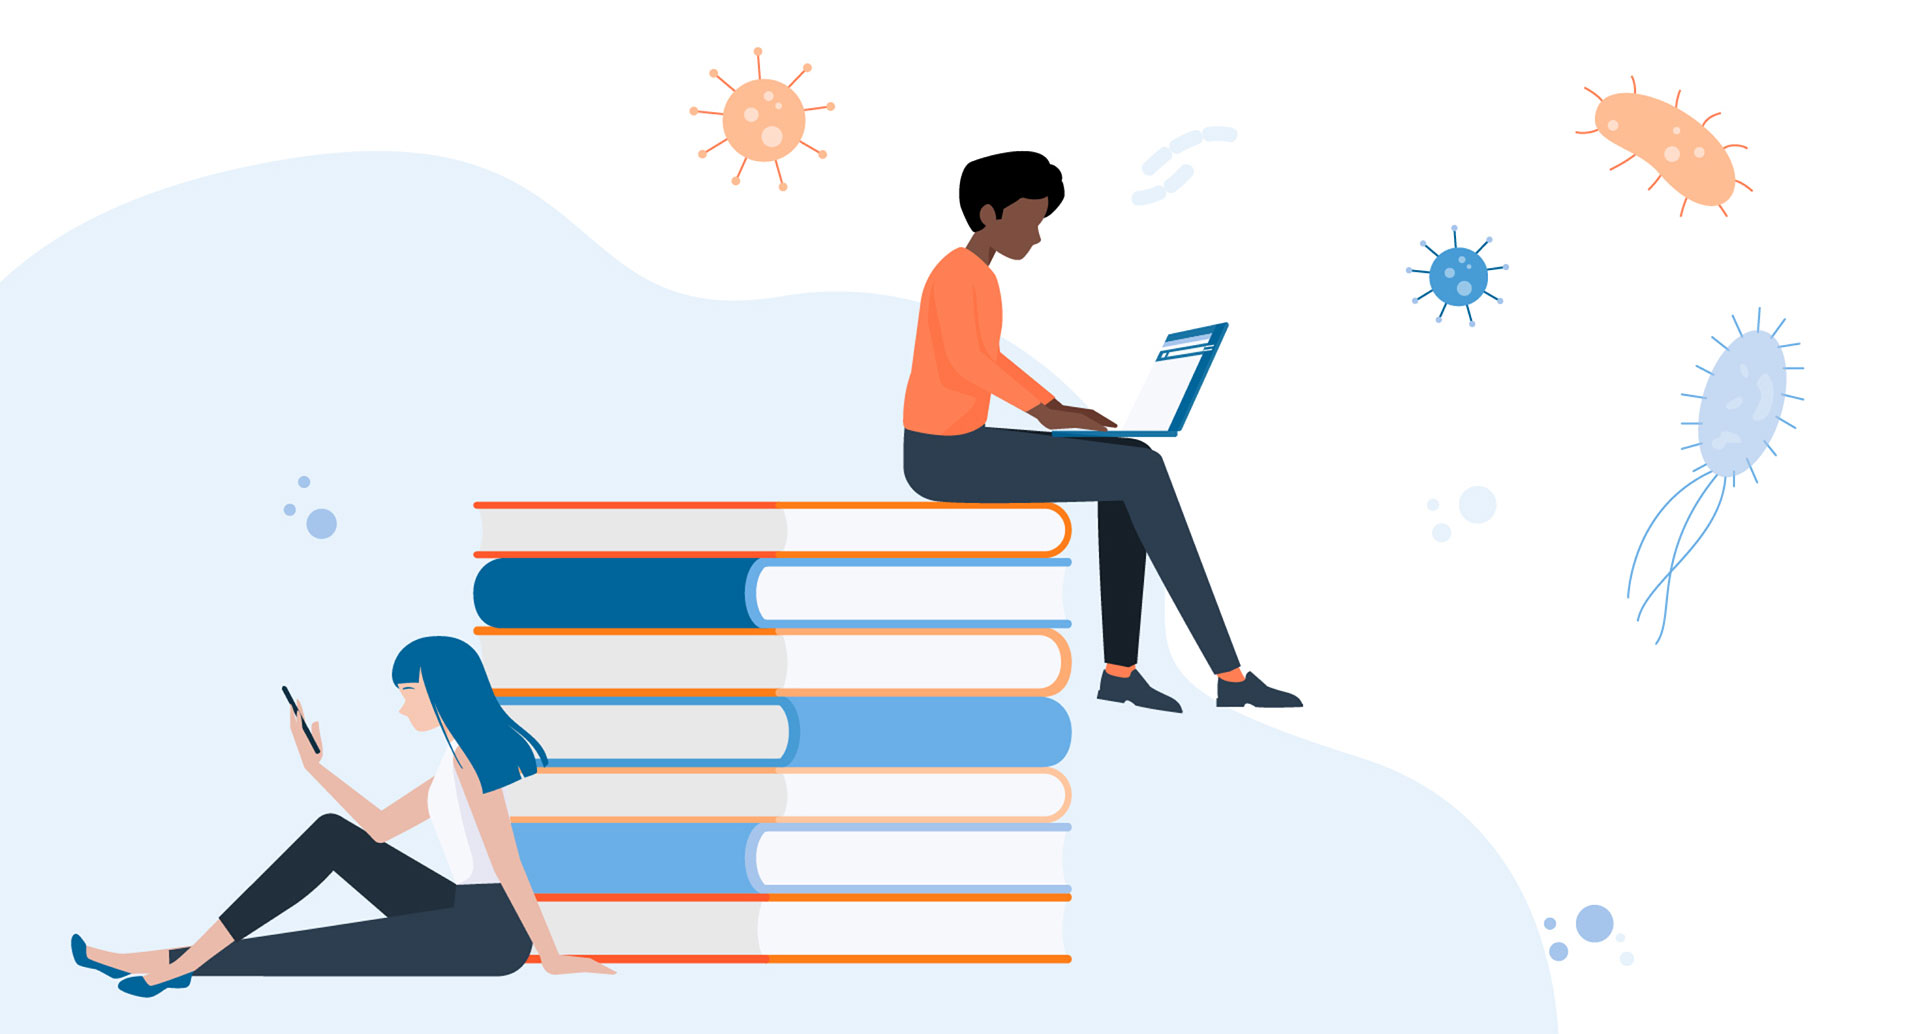 Illustration of two people on laptops on a giant pile of books